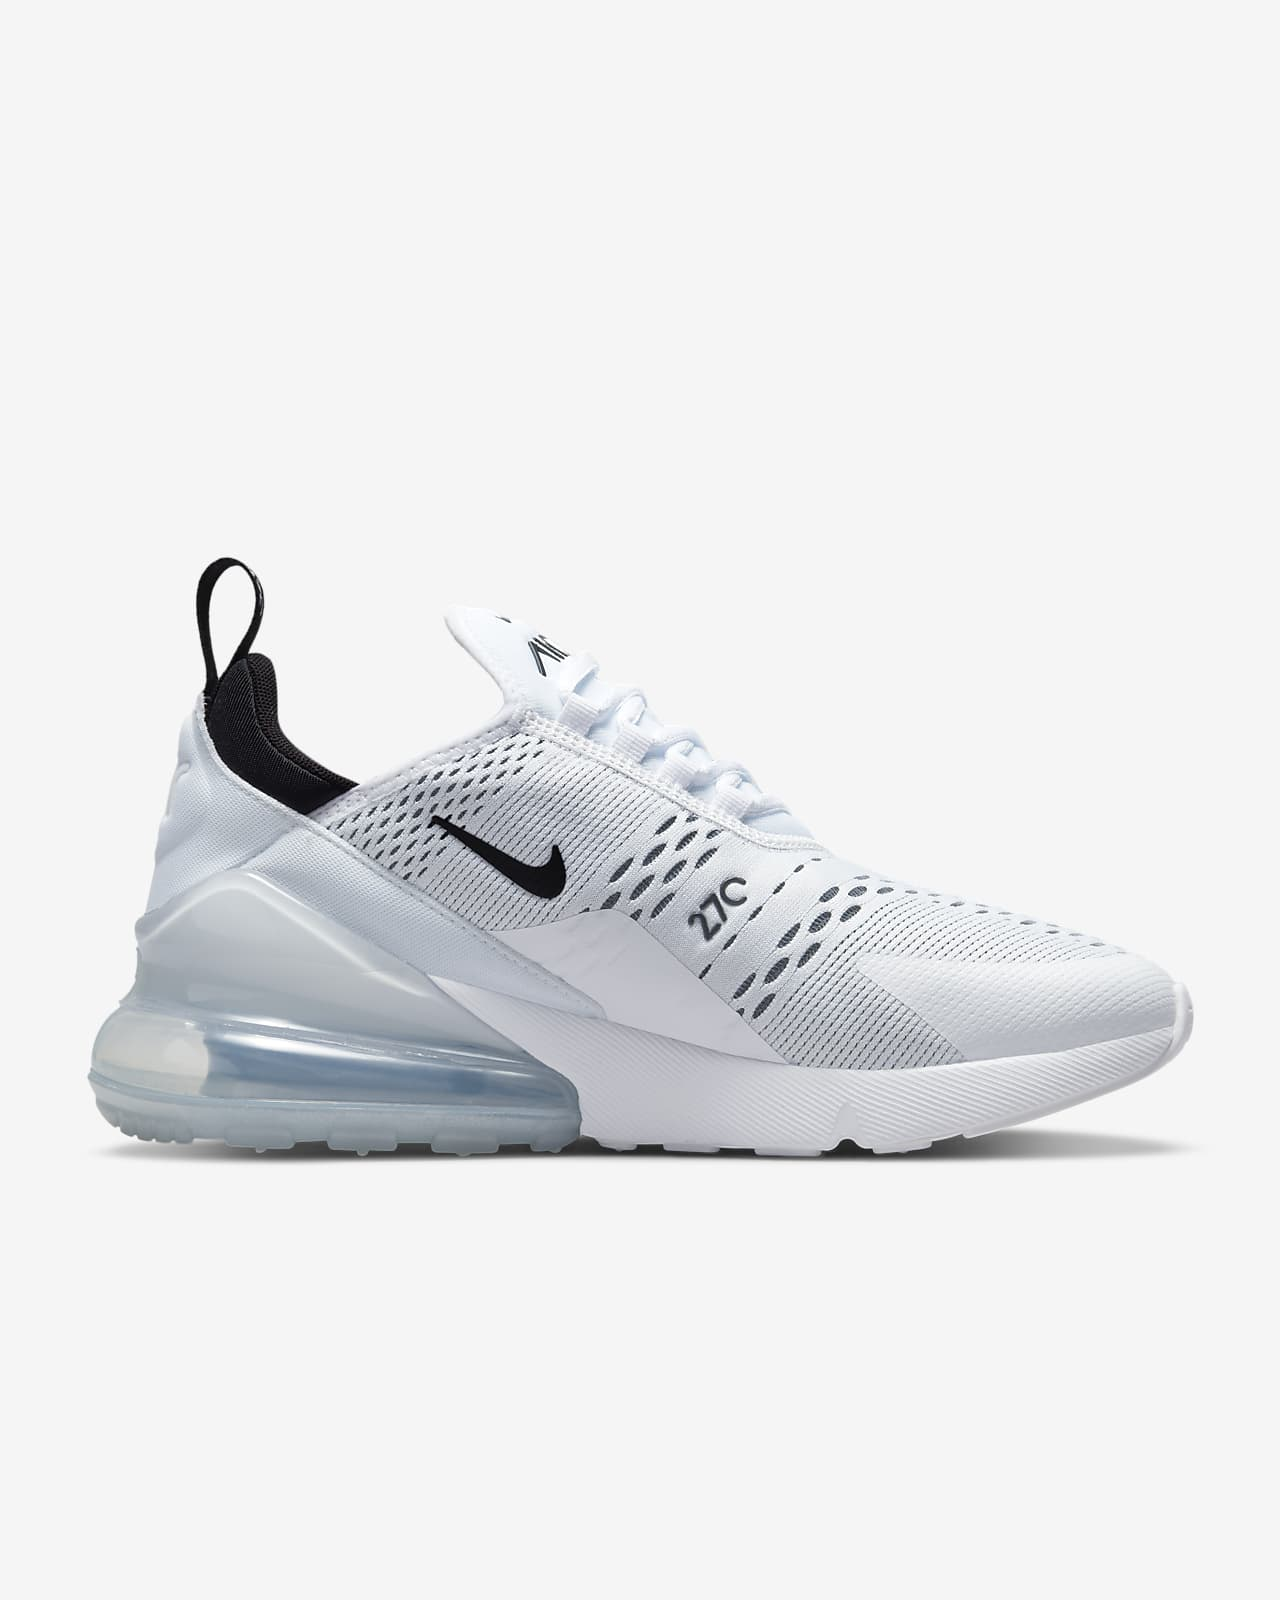 Nike Air Max 270 RT PS Chaussure de Course Fille